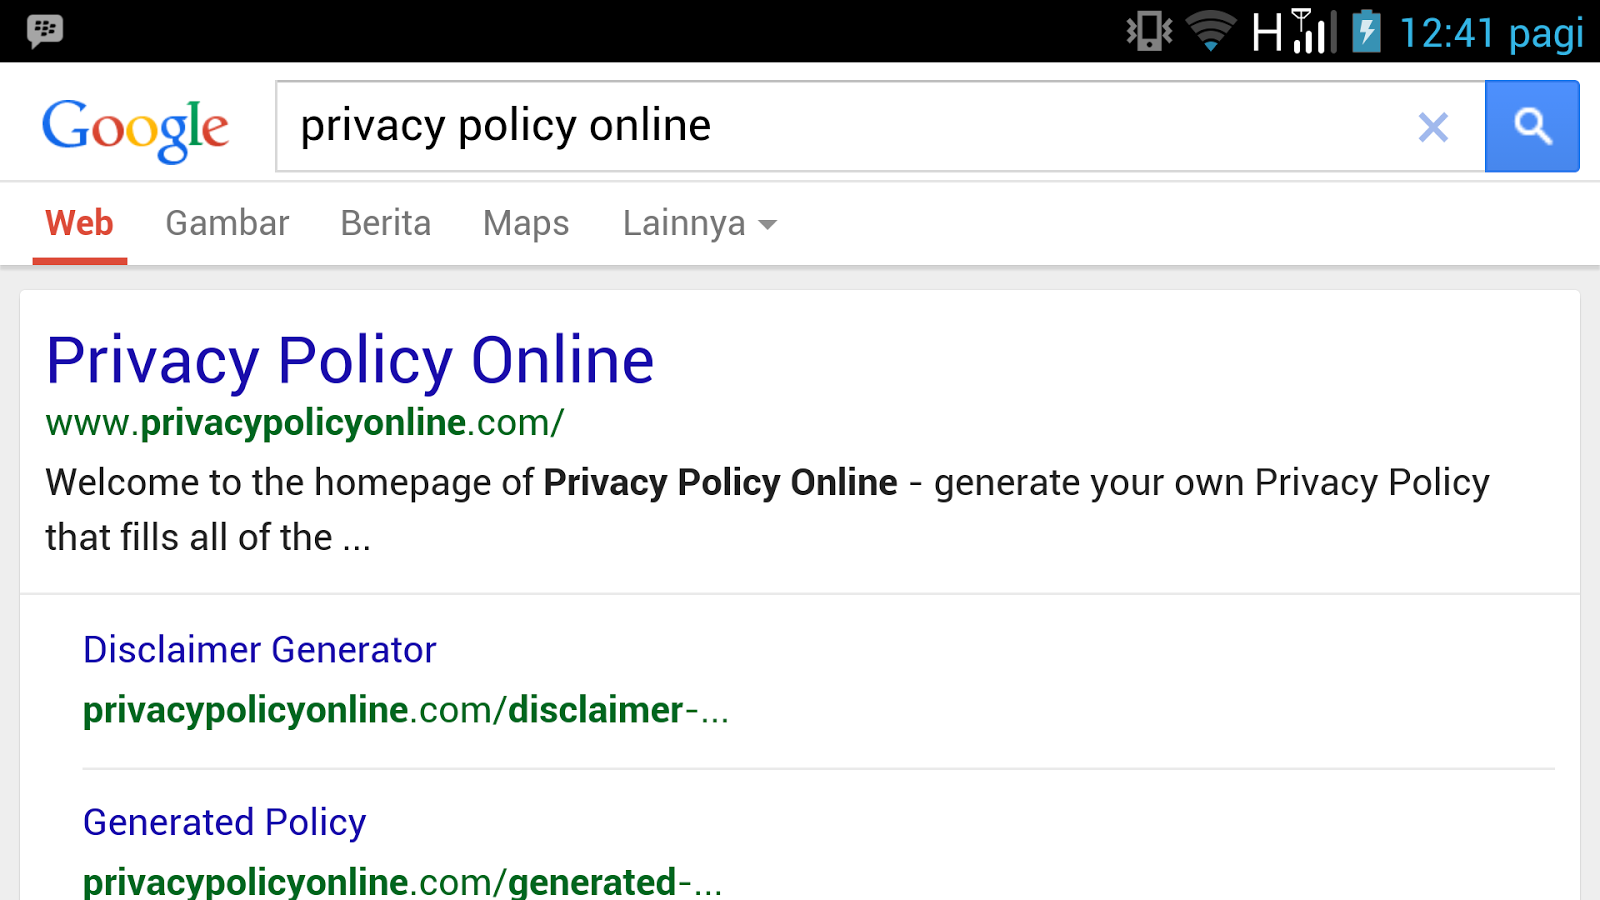 Cara sederhana membuat privacy policy